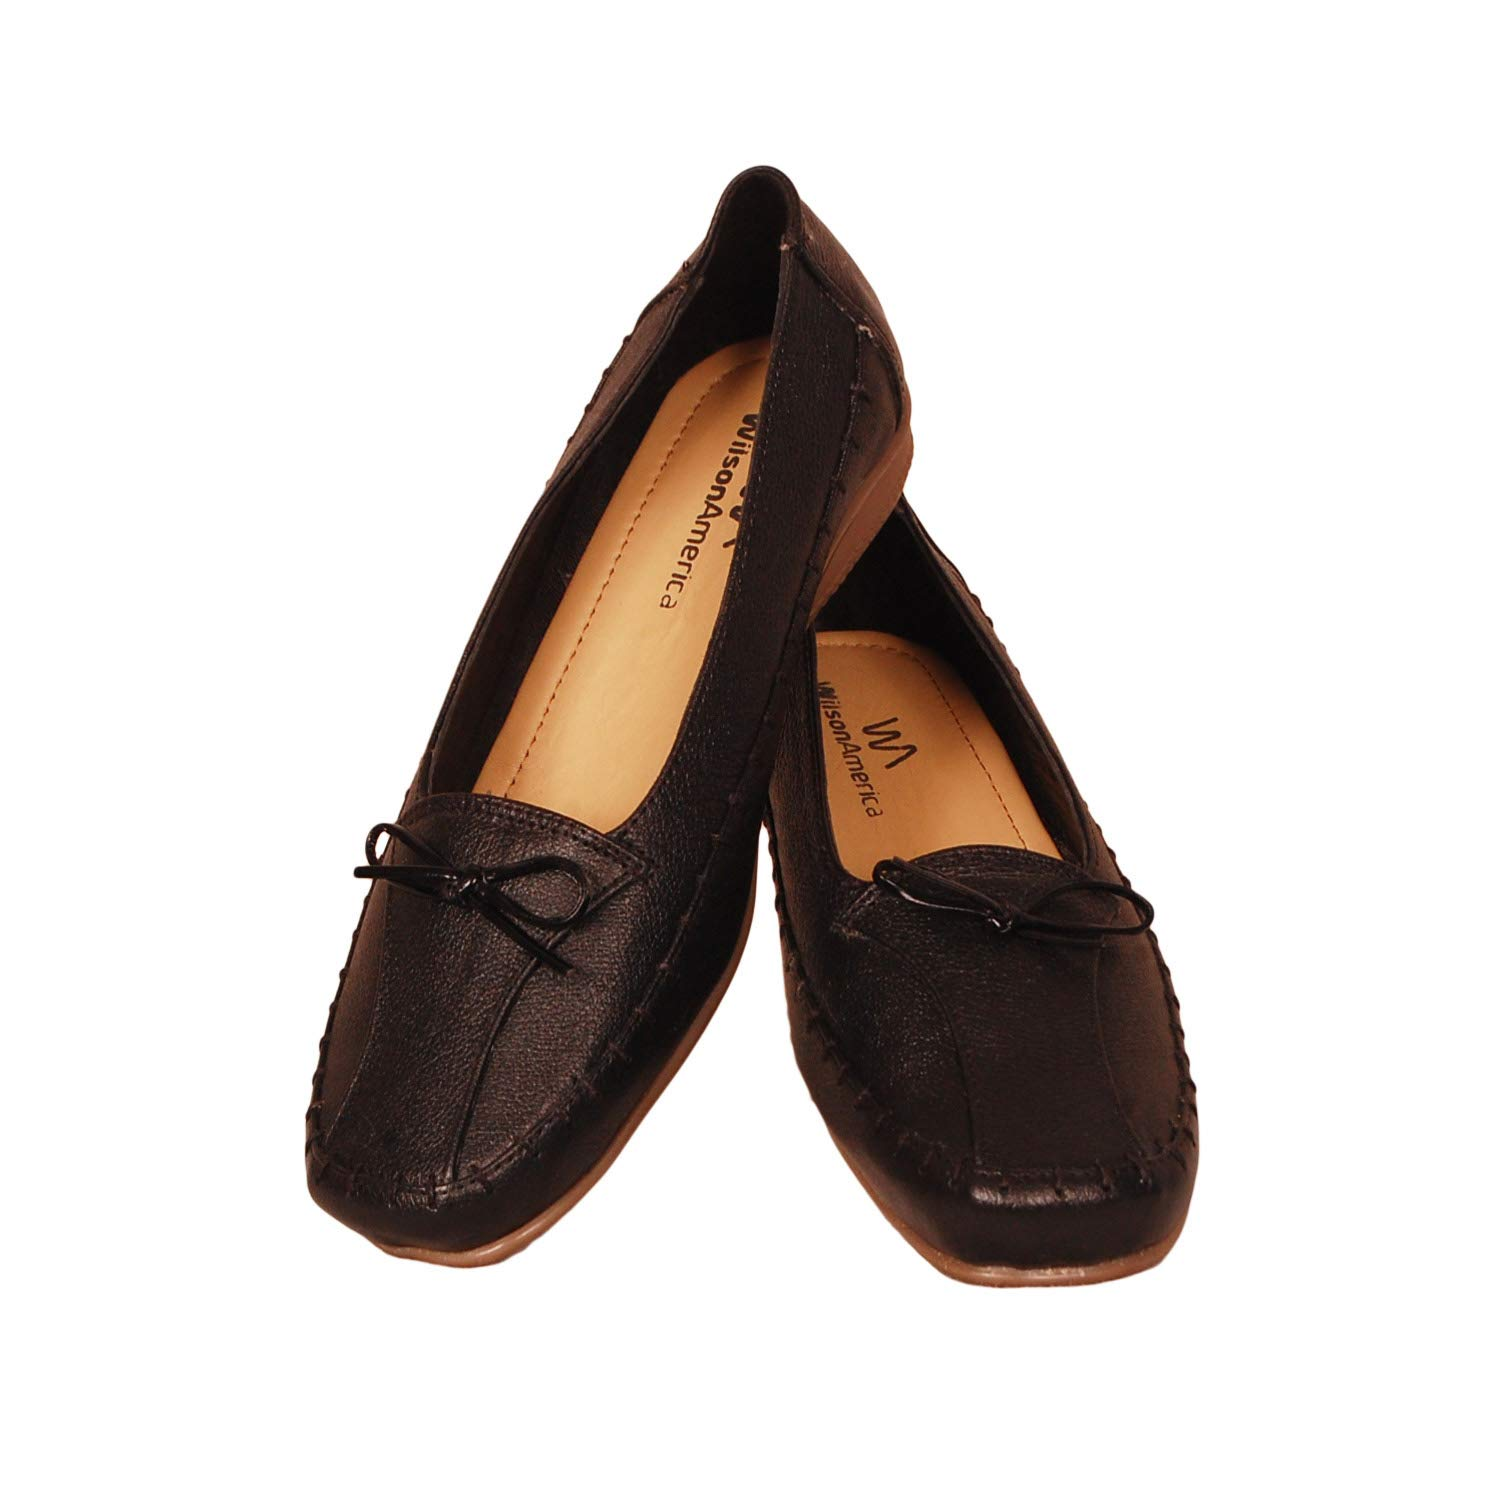 Casual Leather Ballies Shoes for Womens